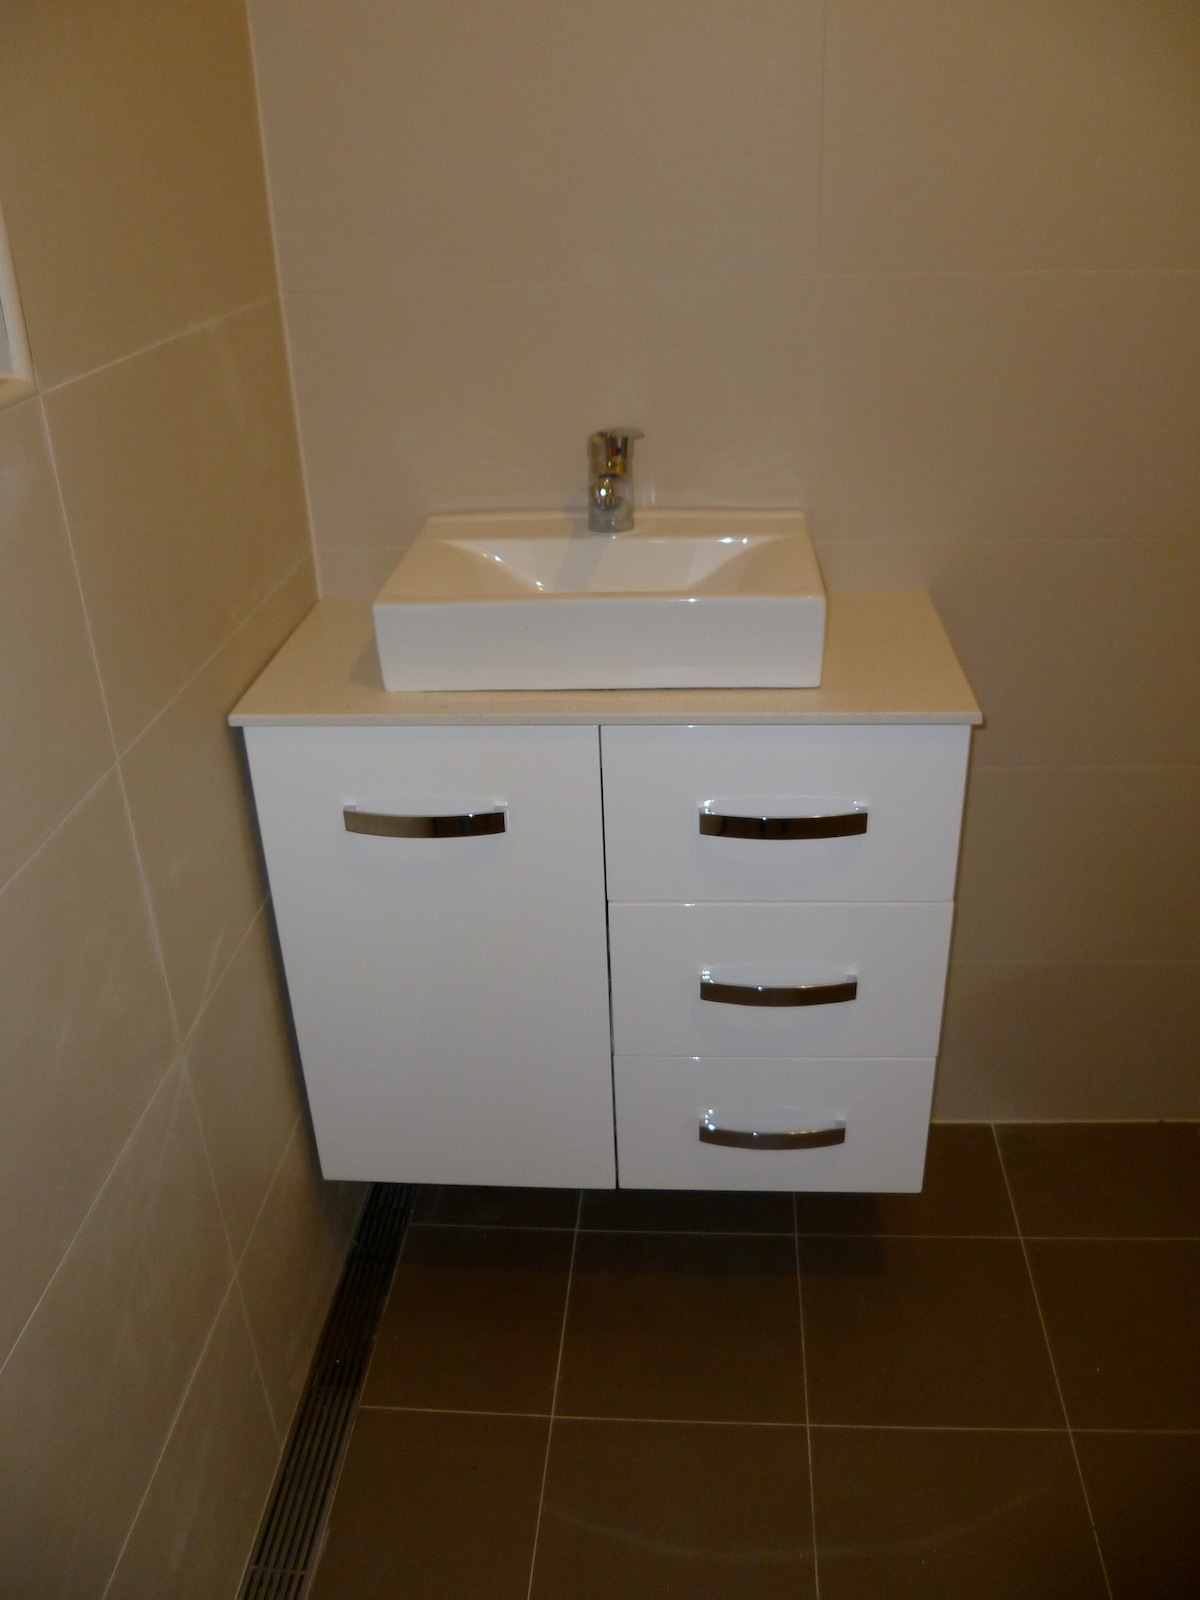 Heated flooring fully tiled wet-room including toilet vanity, shower facility. Note: No bath.